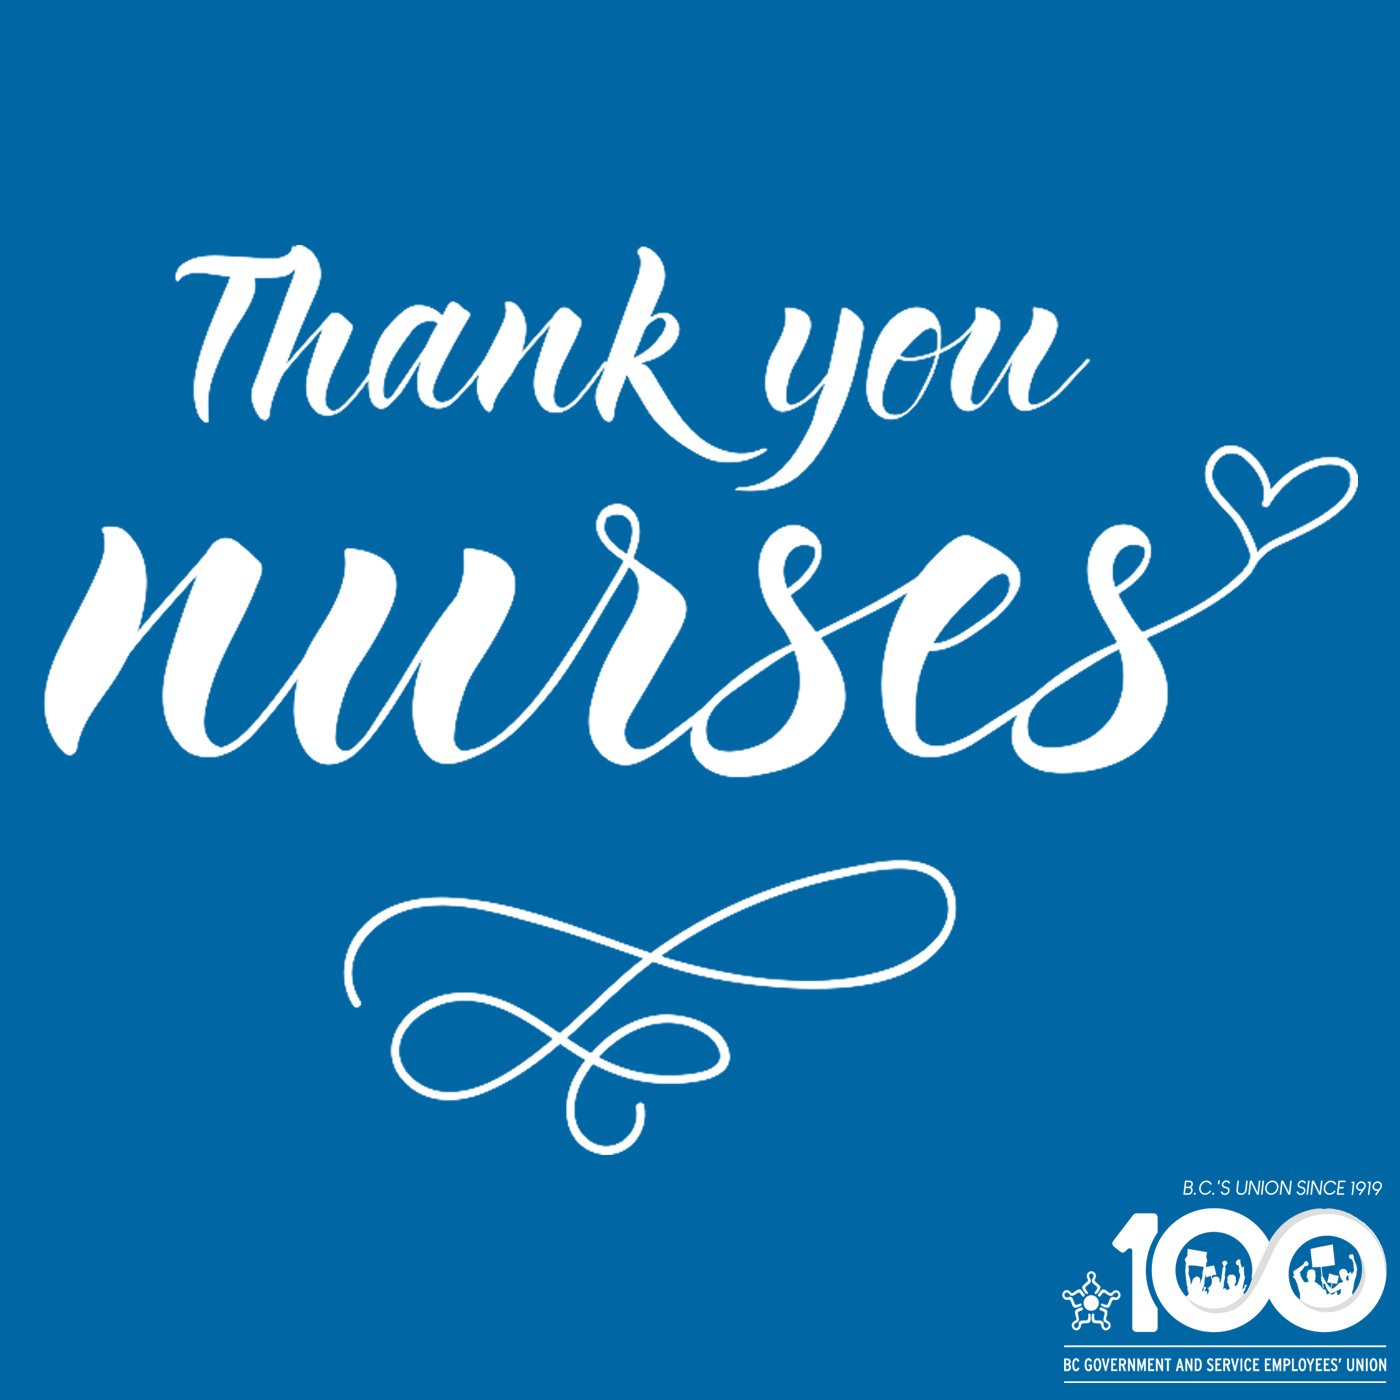 Thank you Nurses. From BCGEU